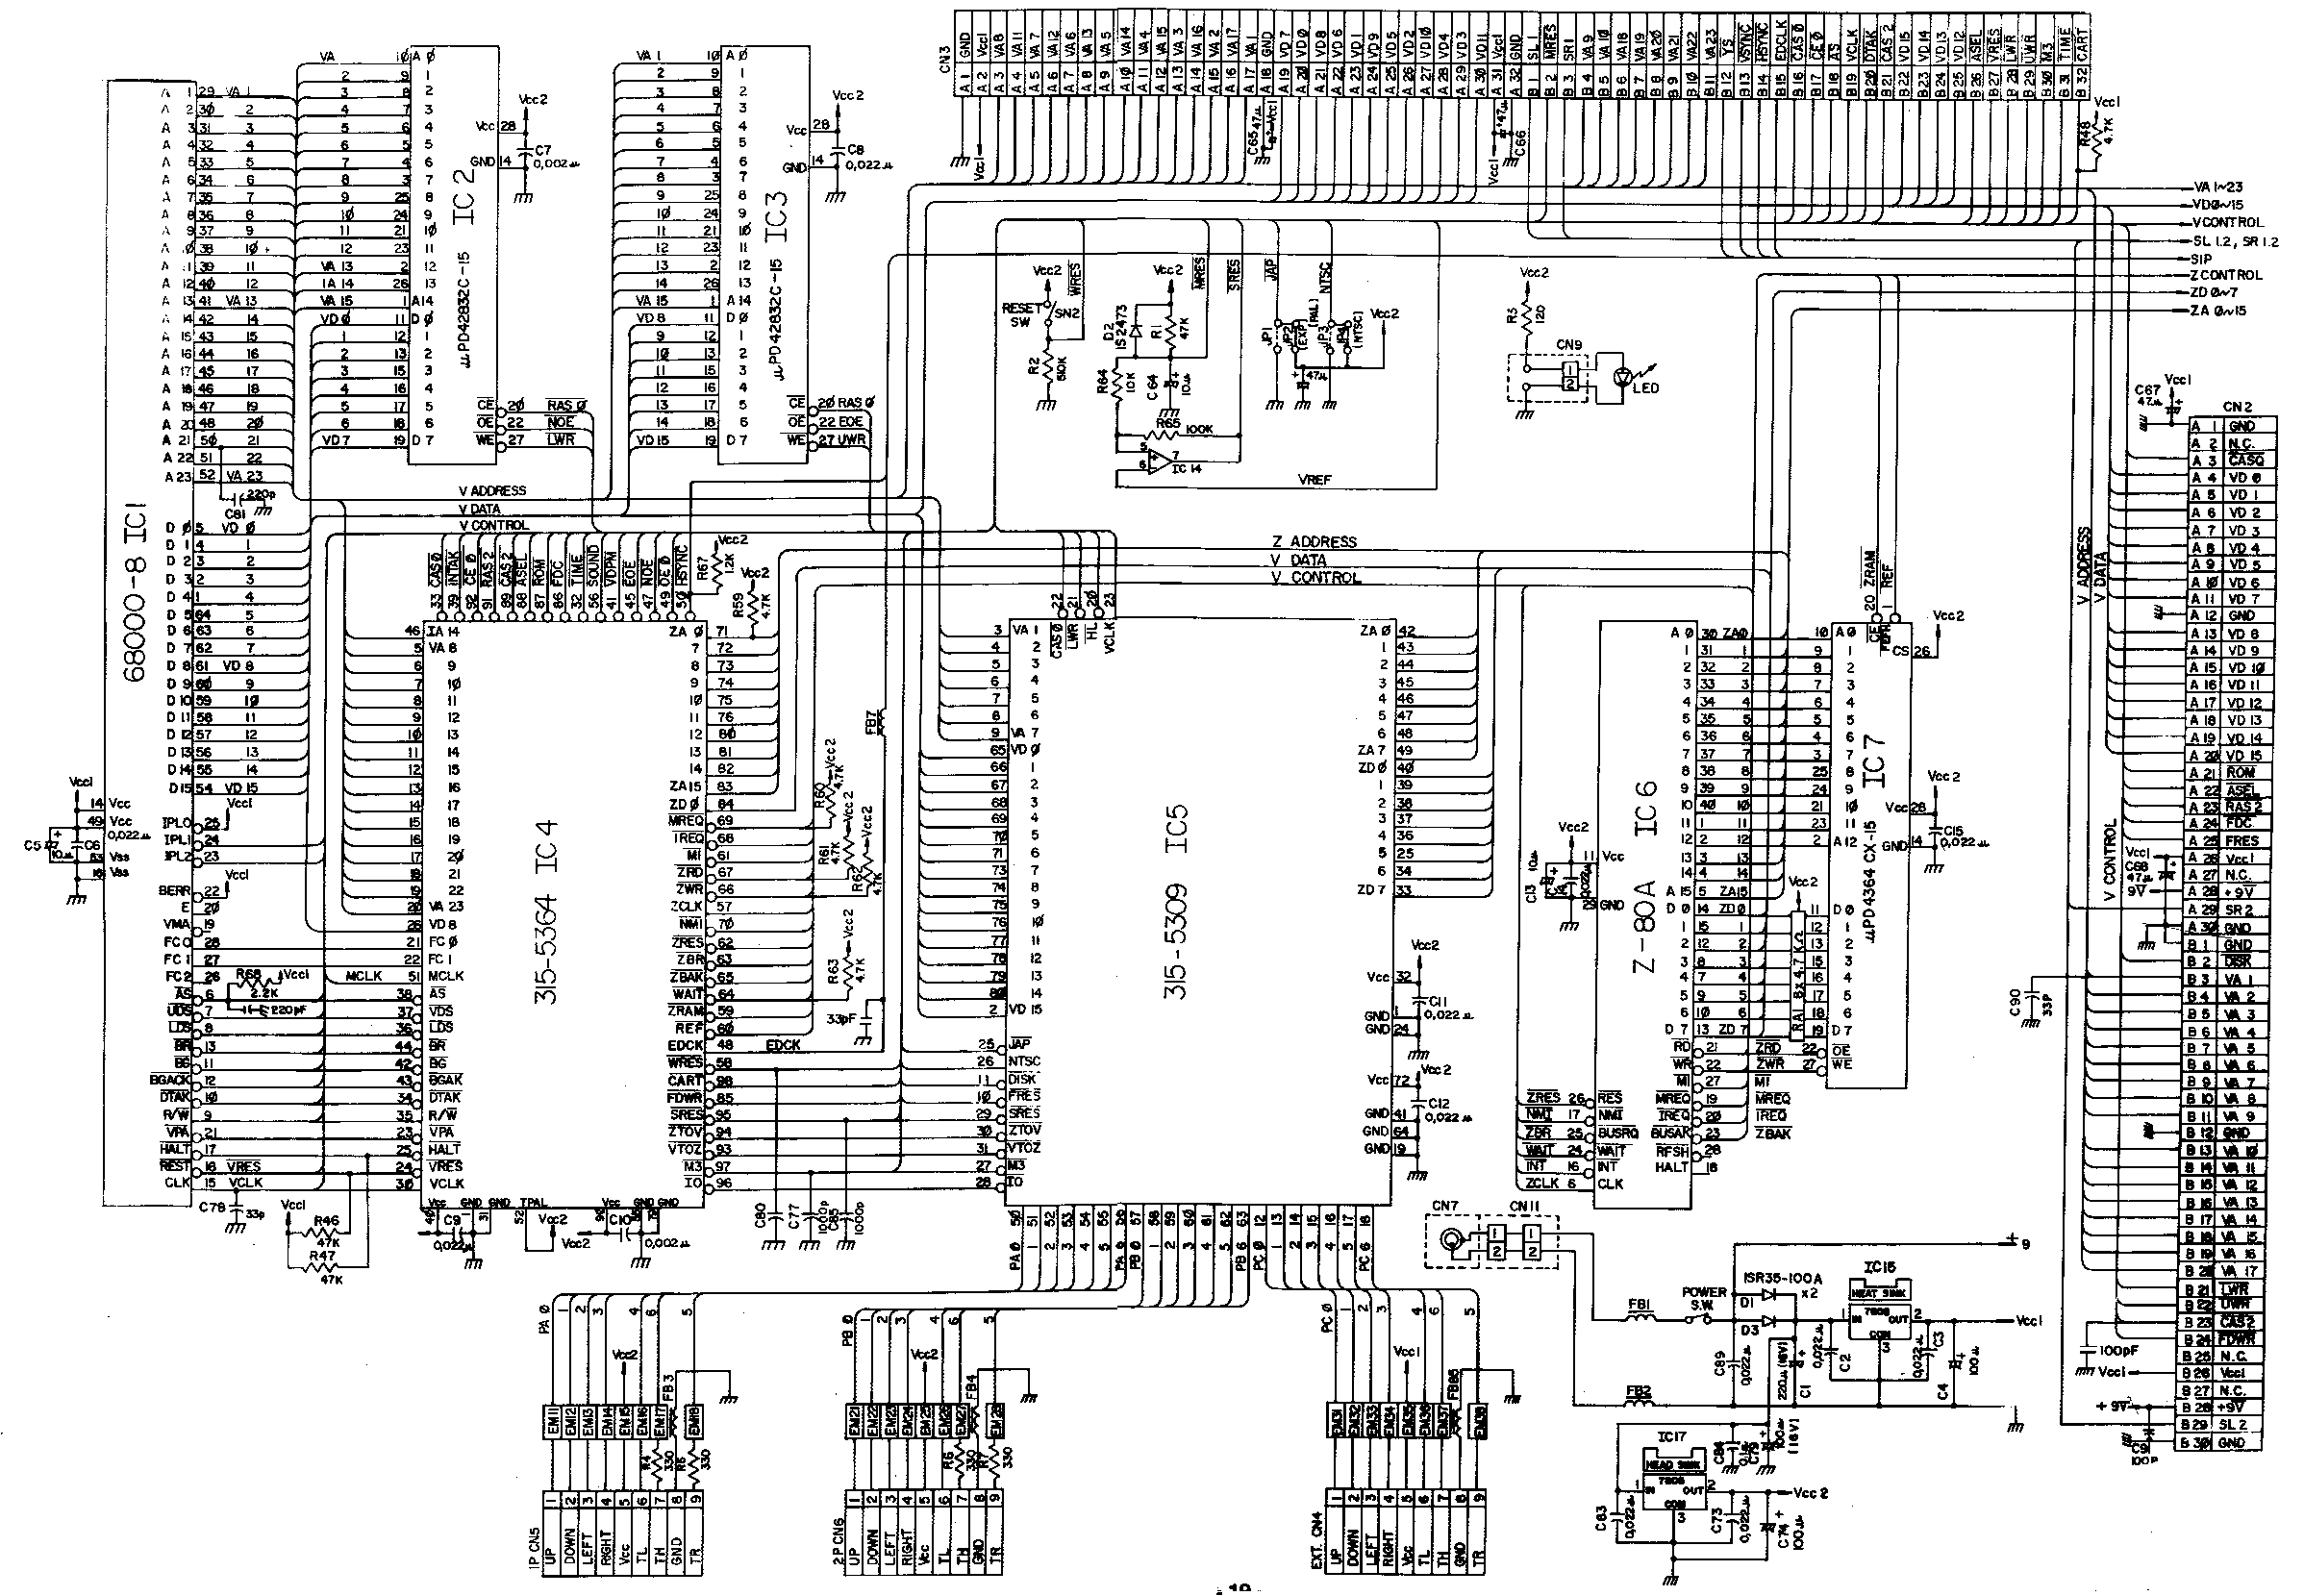 N64 Wiring Diagram | Wiring Liry on